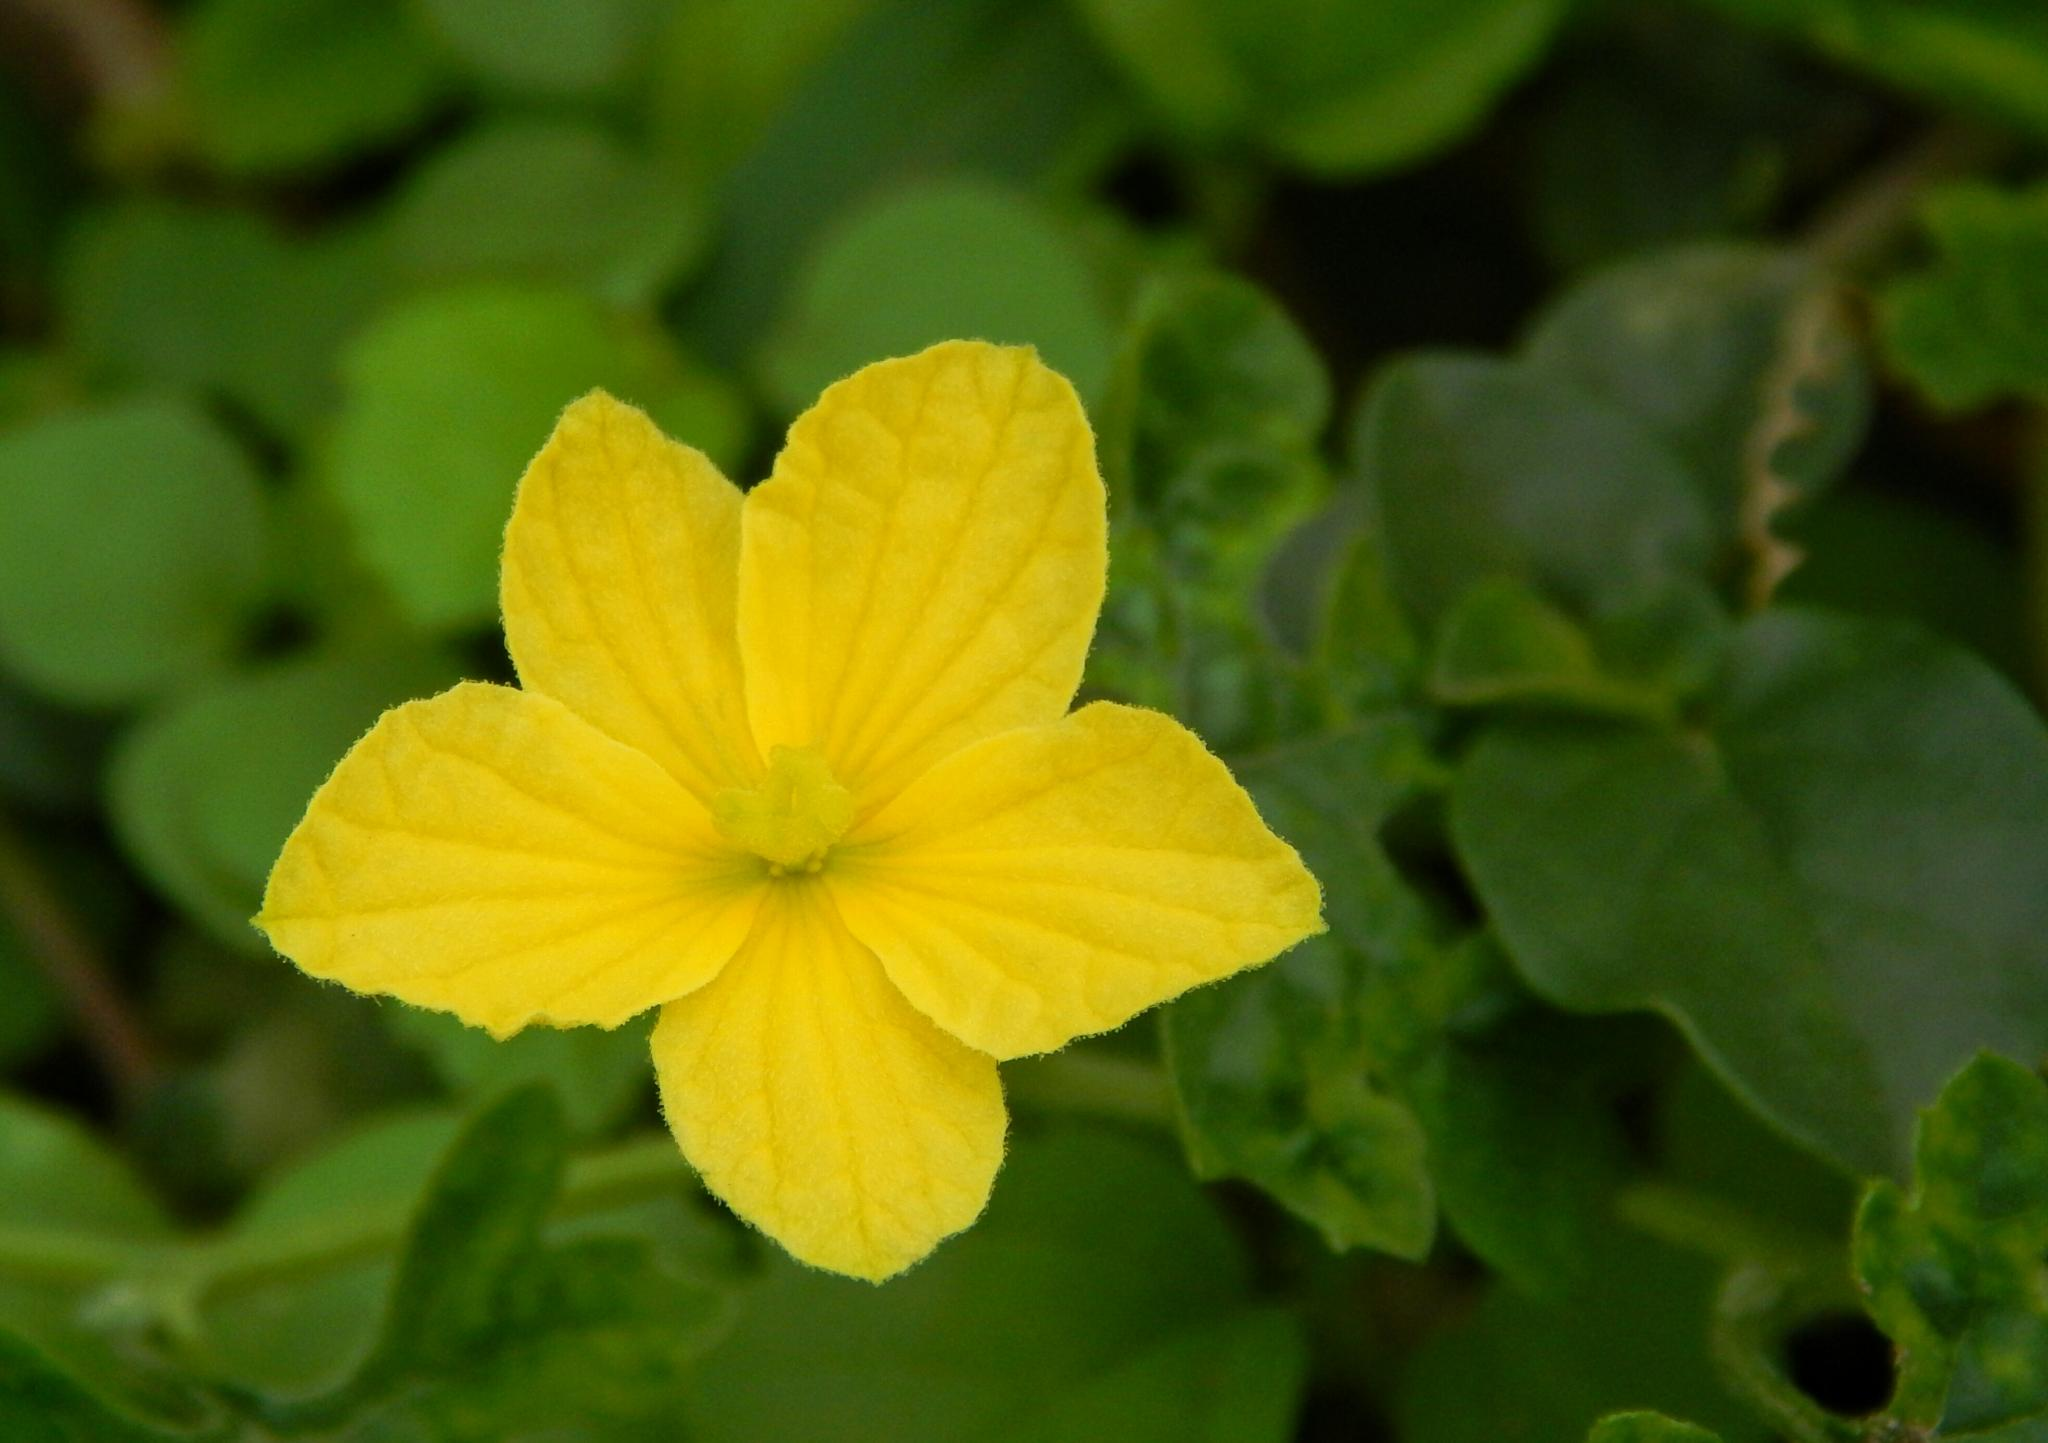 yellow flower by Aritra ghosh